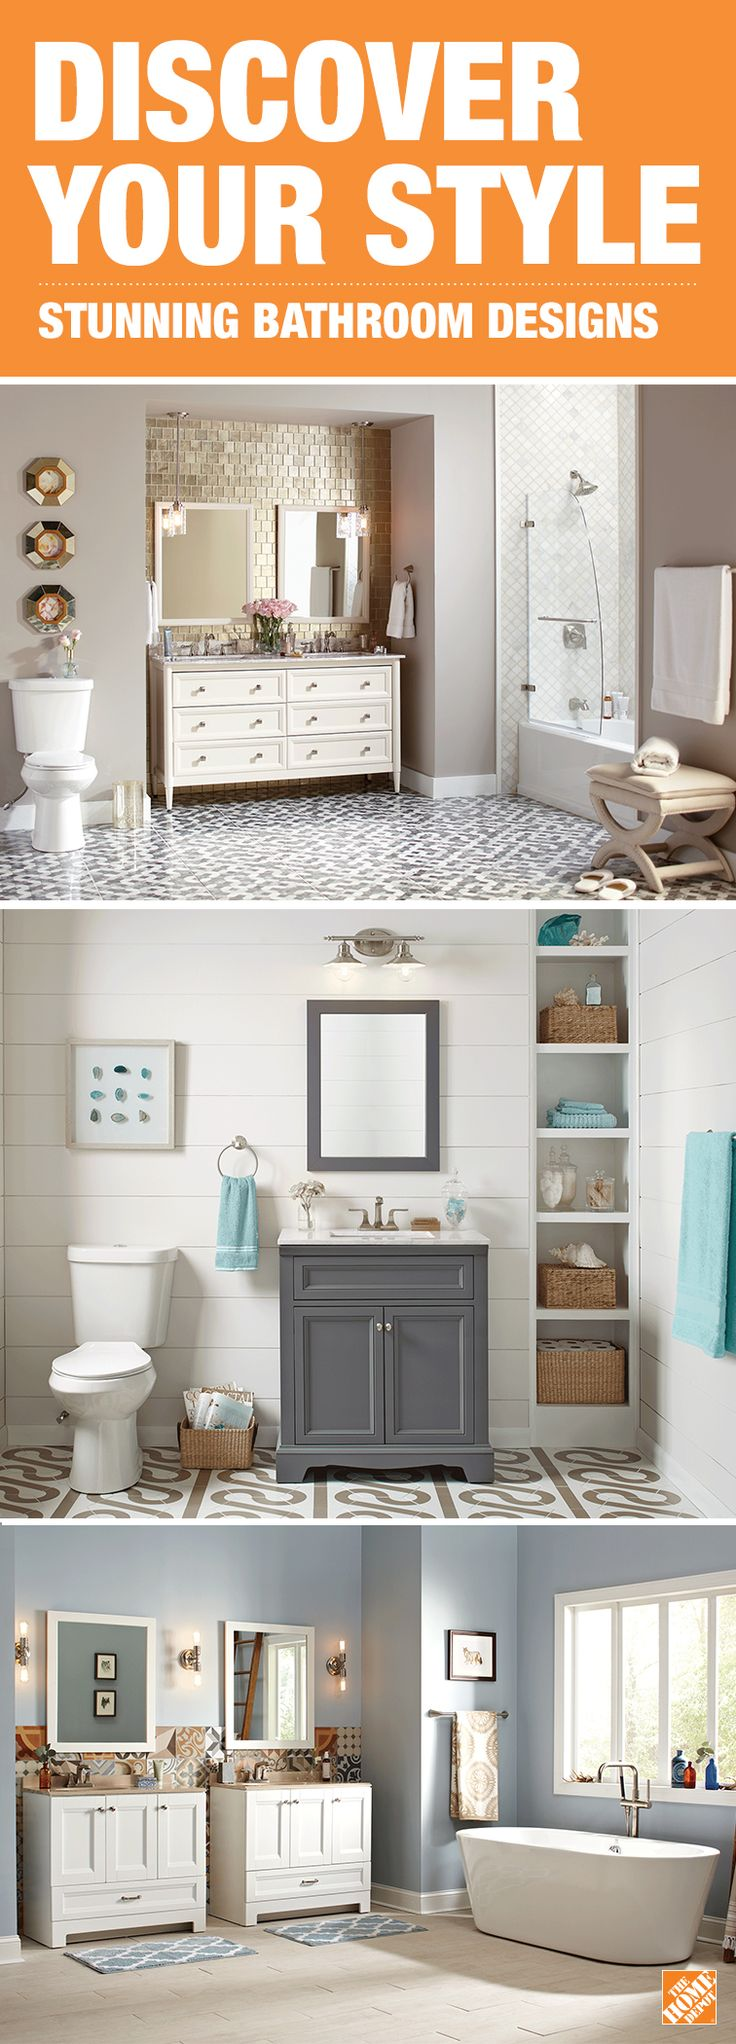 remodeling vanity mirrors bathroom faucets emmas sconces shower units home master depot tile s heads shelf a and renovation remodel beautiful sources mess emma